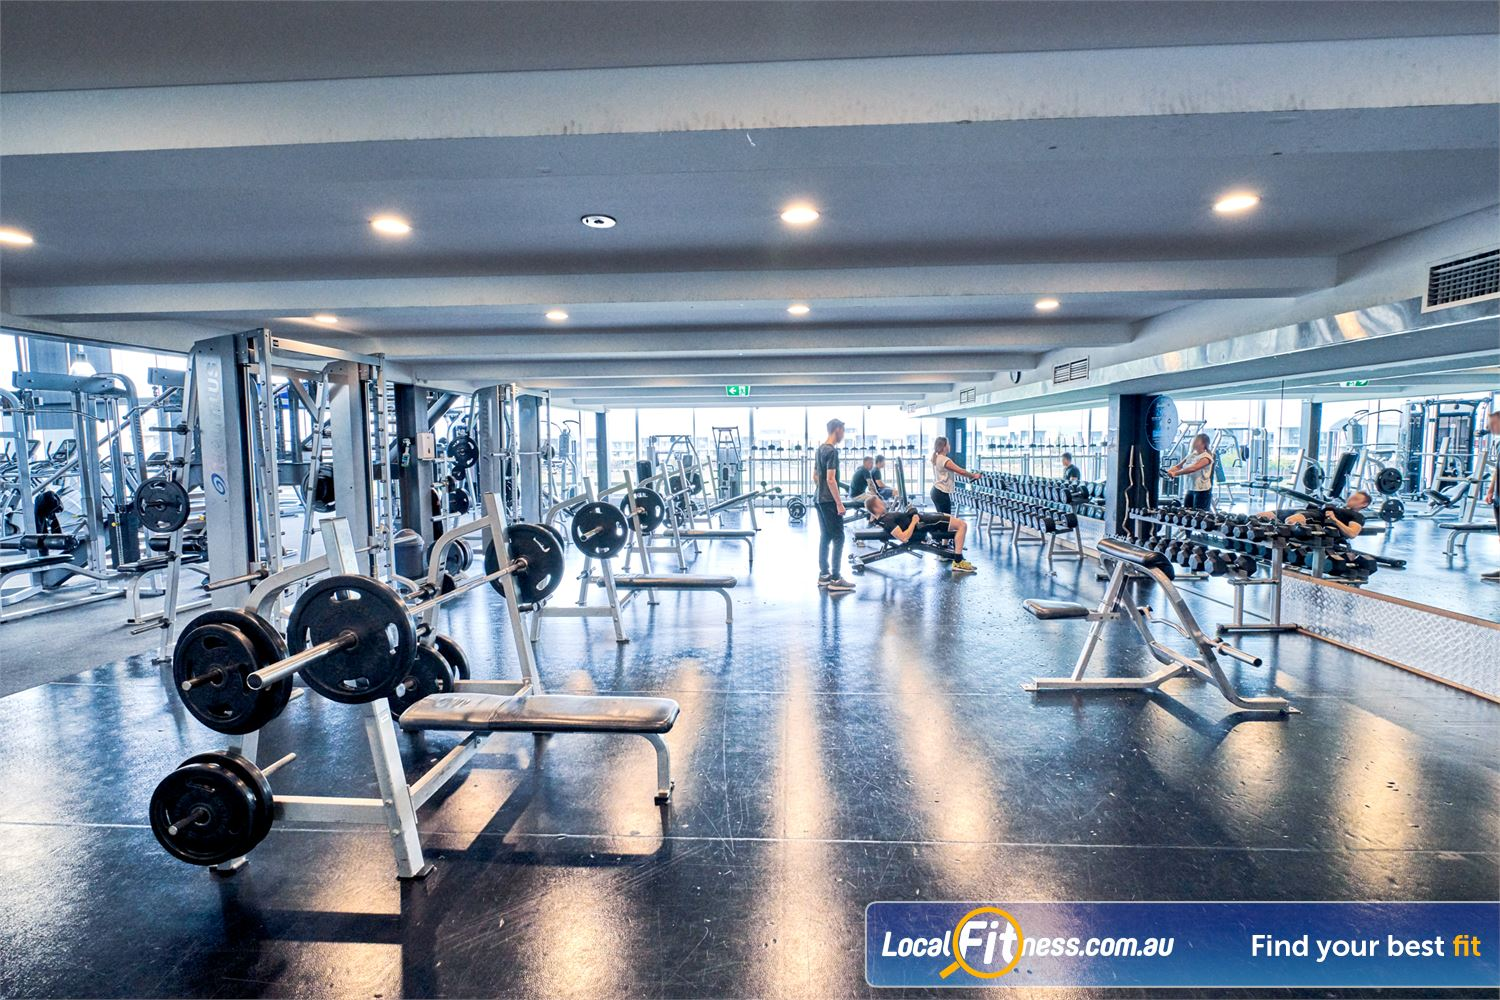 Goodlife Health Clubs Waverley Park Mulgrave Fully equipped free-weights area at Goodlife Waverley Park.